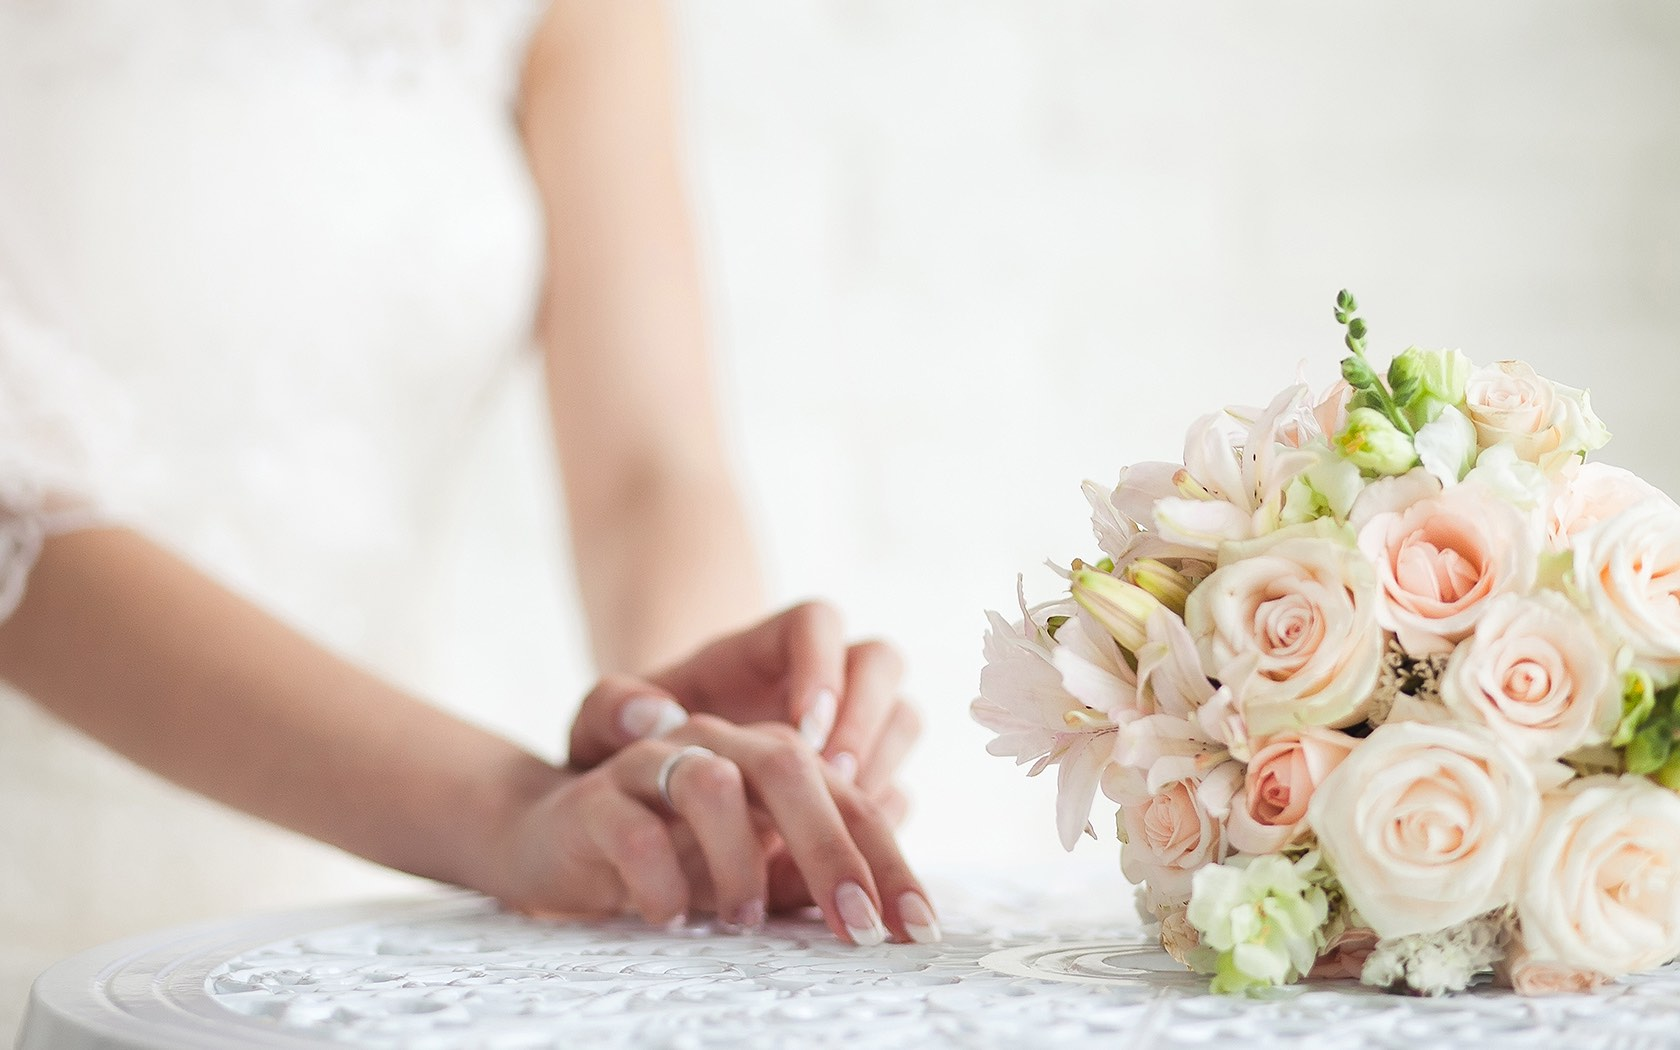 Close up of bride's hands next to flower bouquet